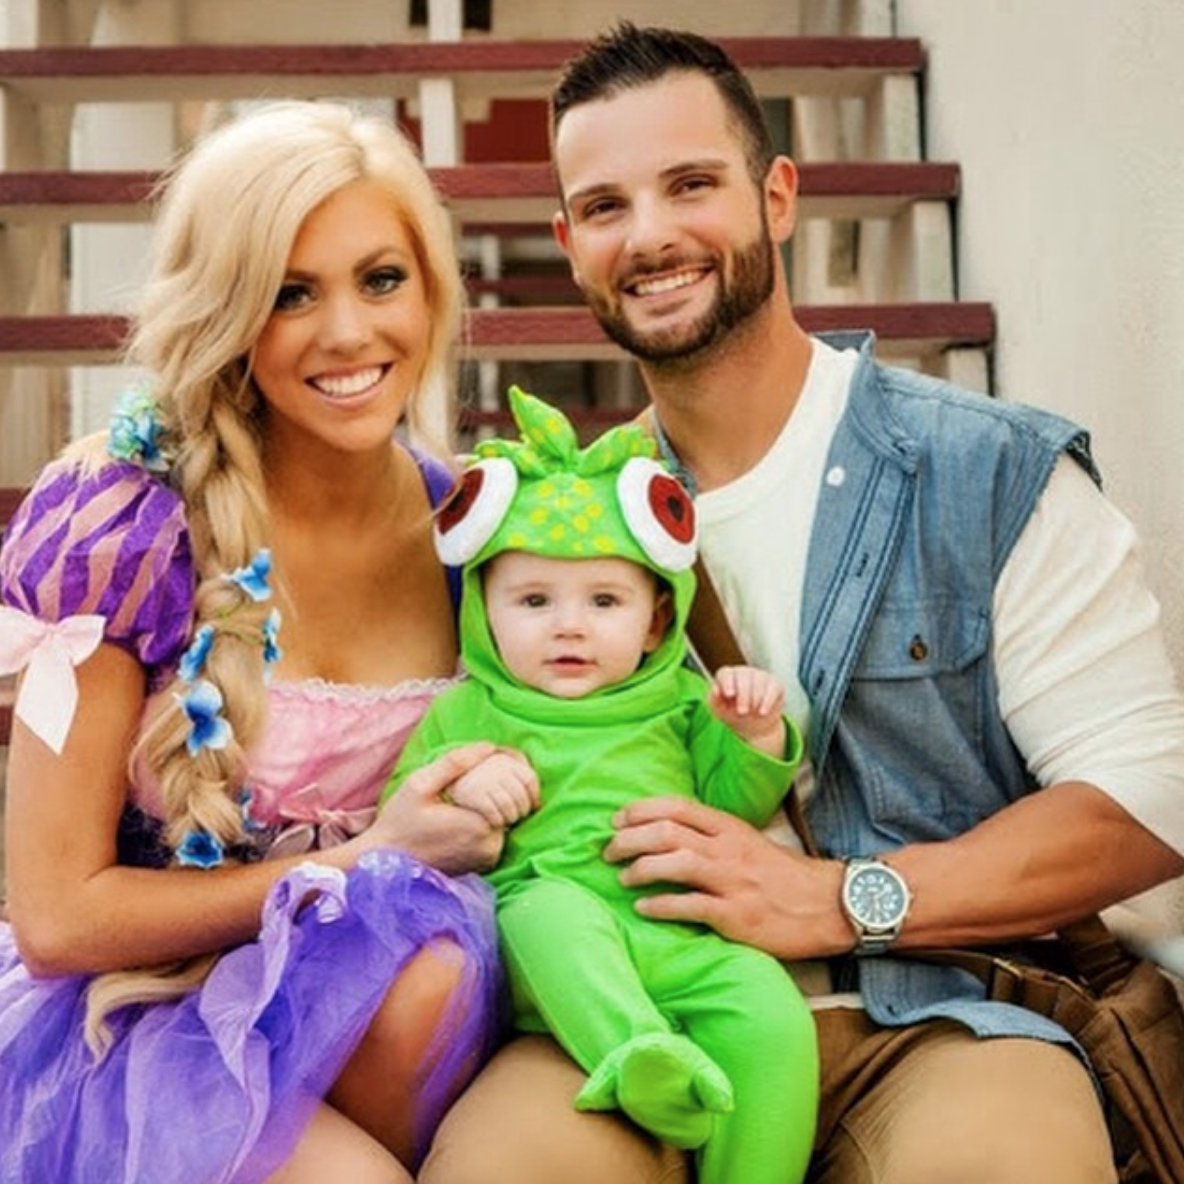 Cafemom Com Tangled 20 Magical Disney Themed Family Halloween Costumes In 2020 Family Themed Halloween Costumes Disney Family Costumes First Halloween Costumes